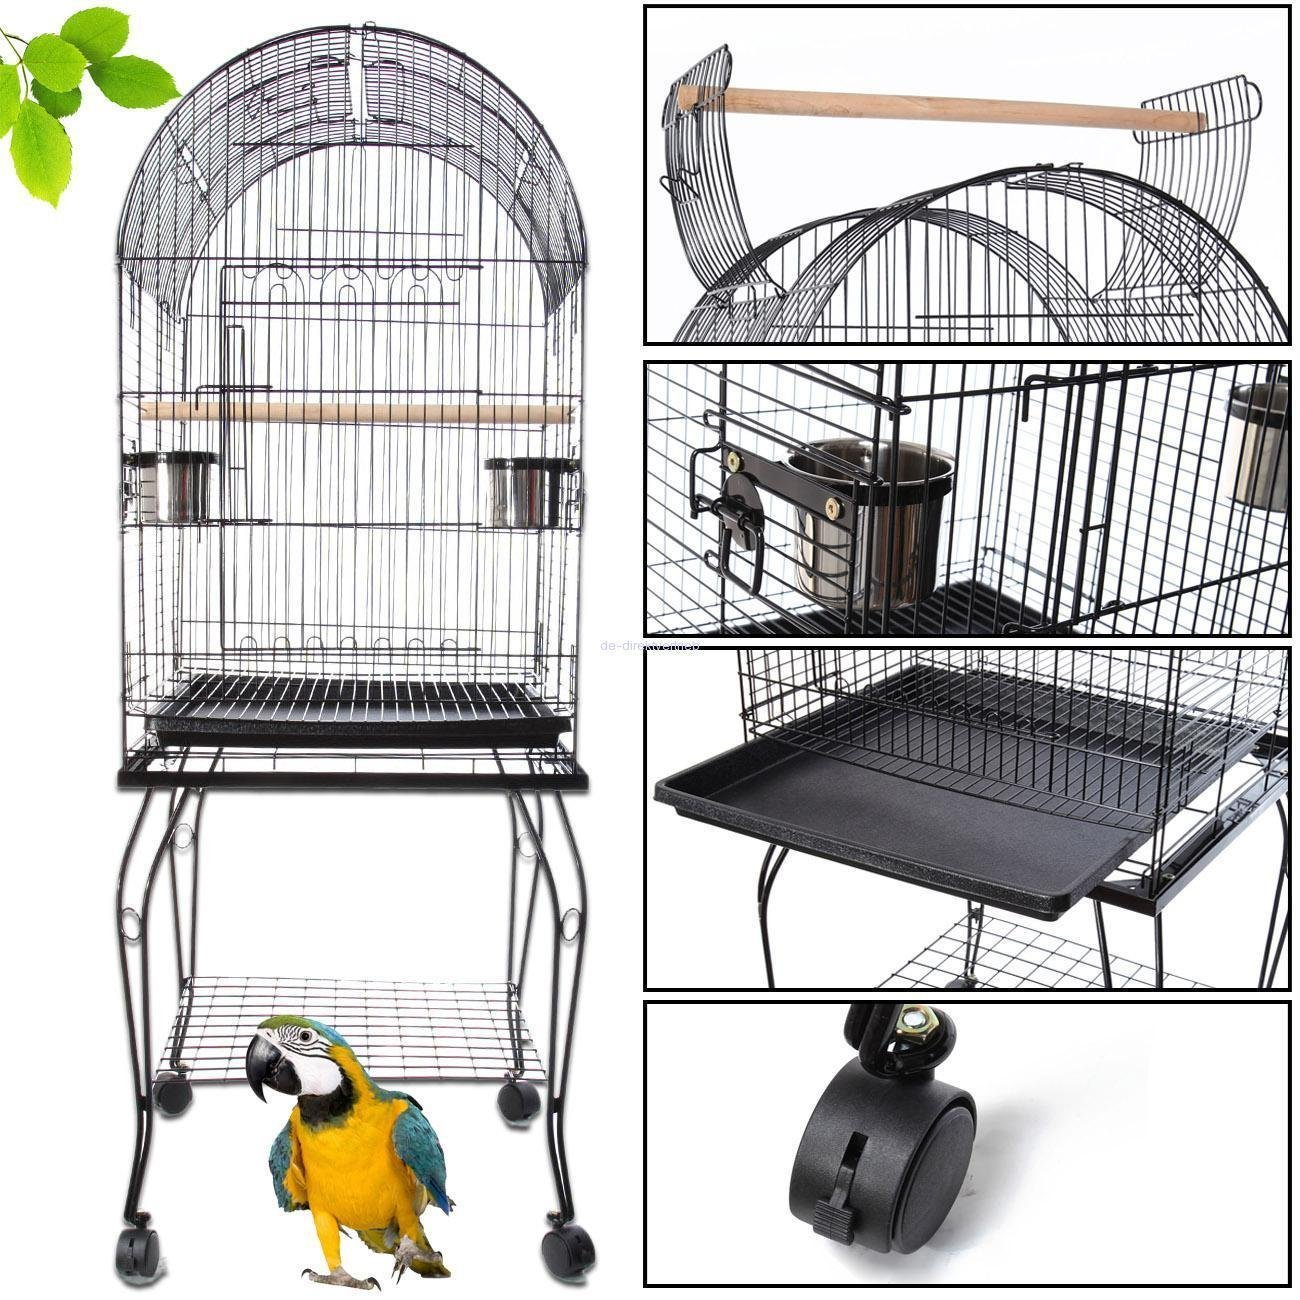 Iglobalbuy Voliere Cage Oiseaux Metal Canaries Perruches Perroquets Avec 2 Mangeoires